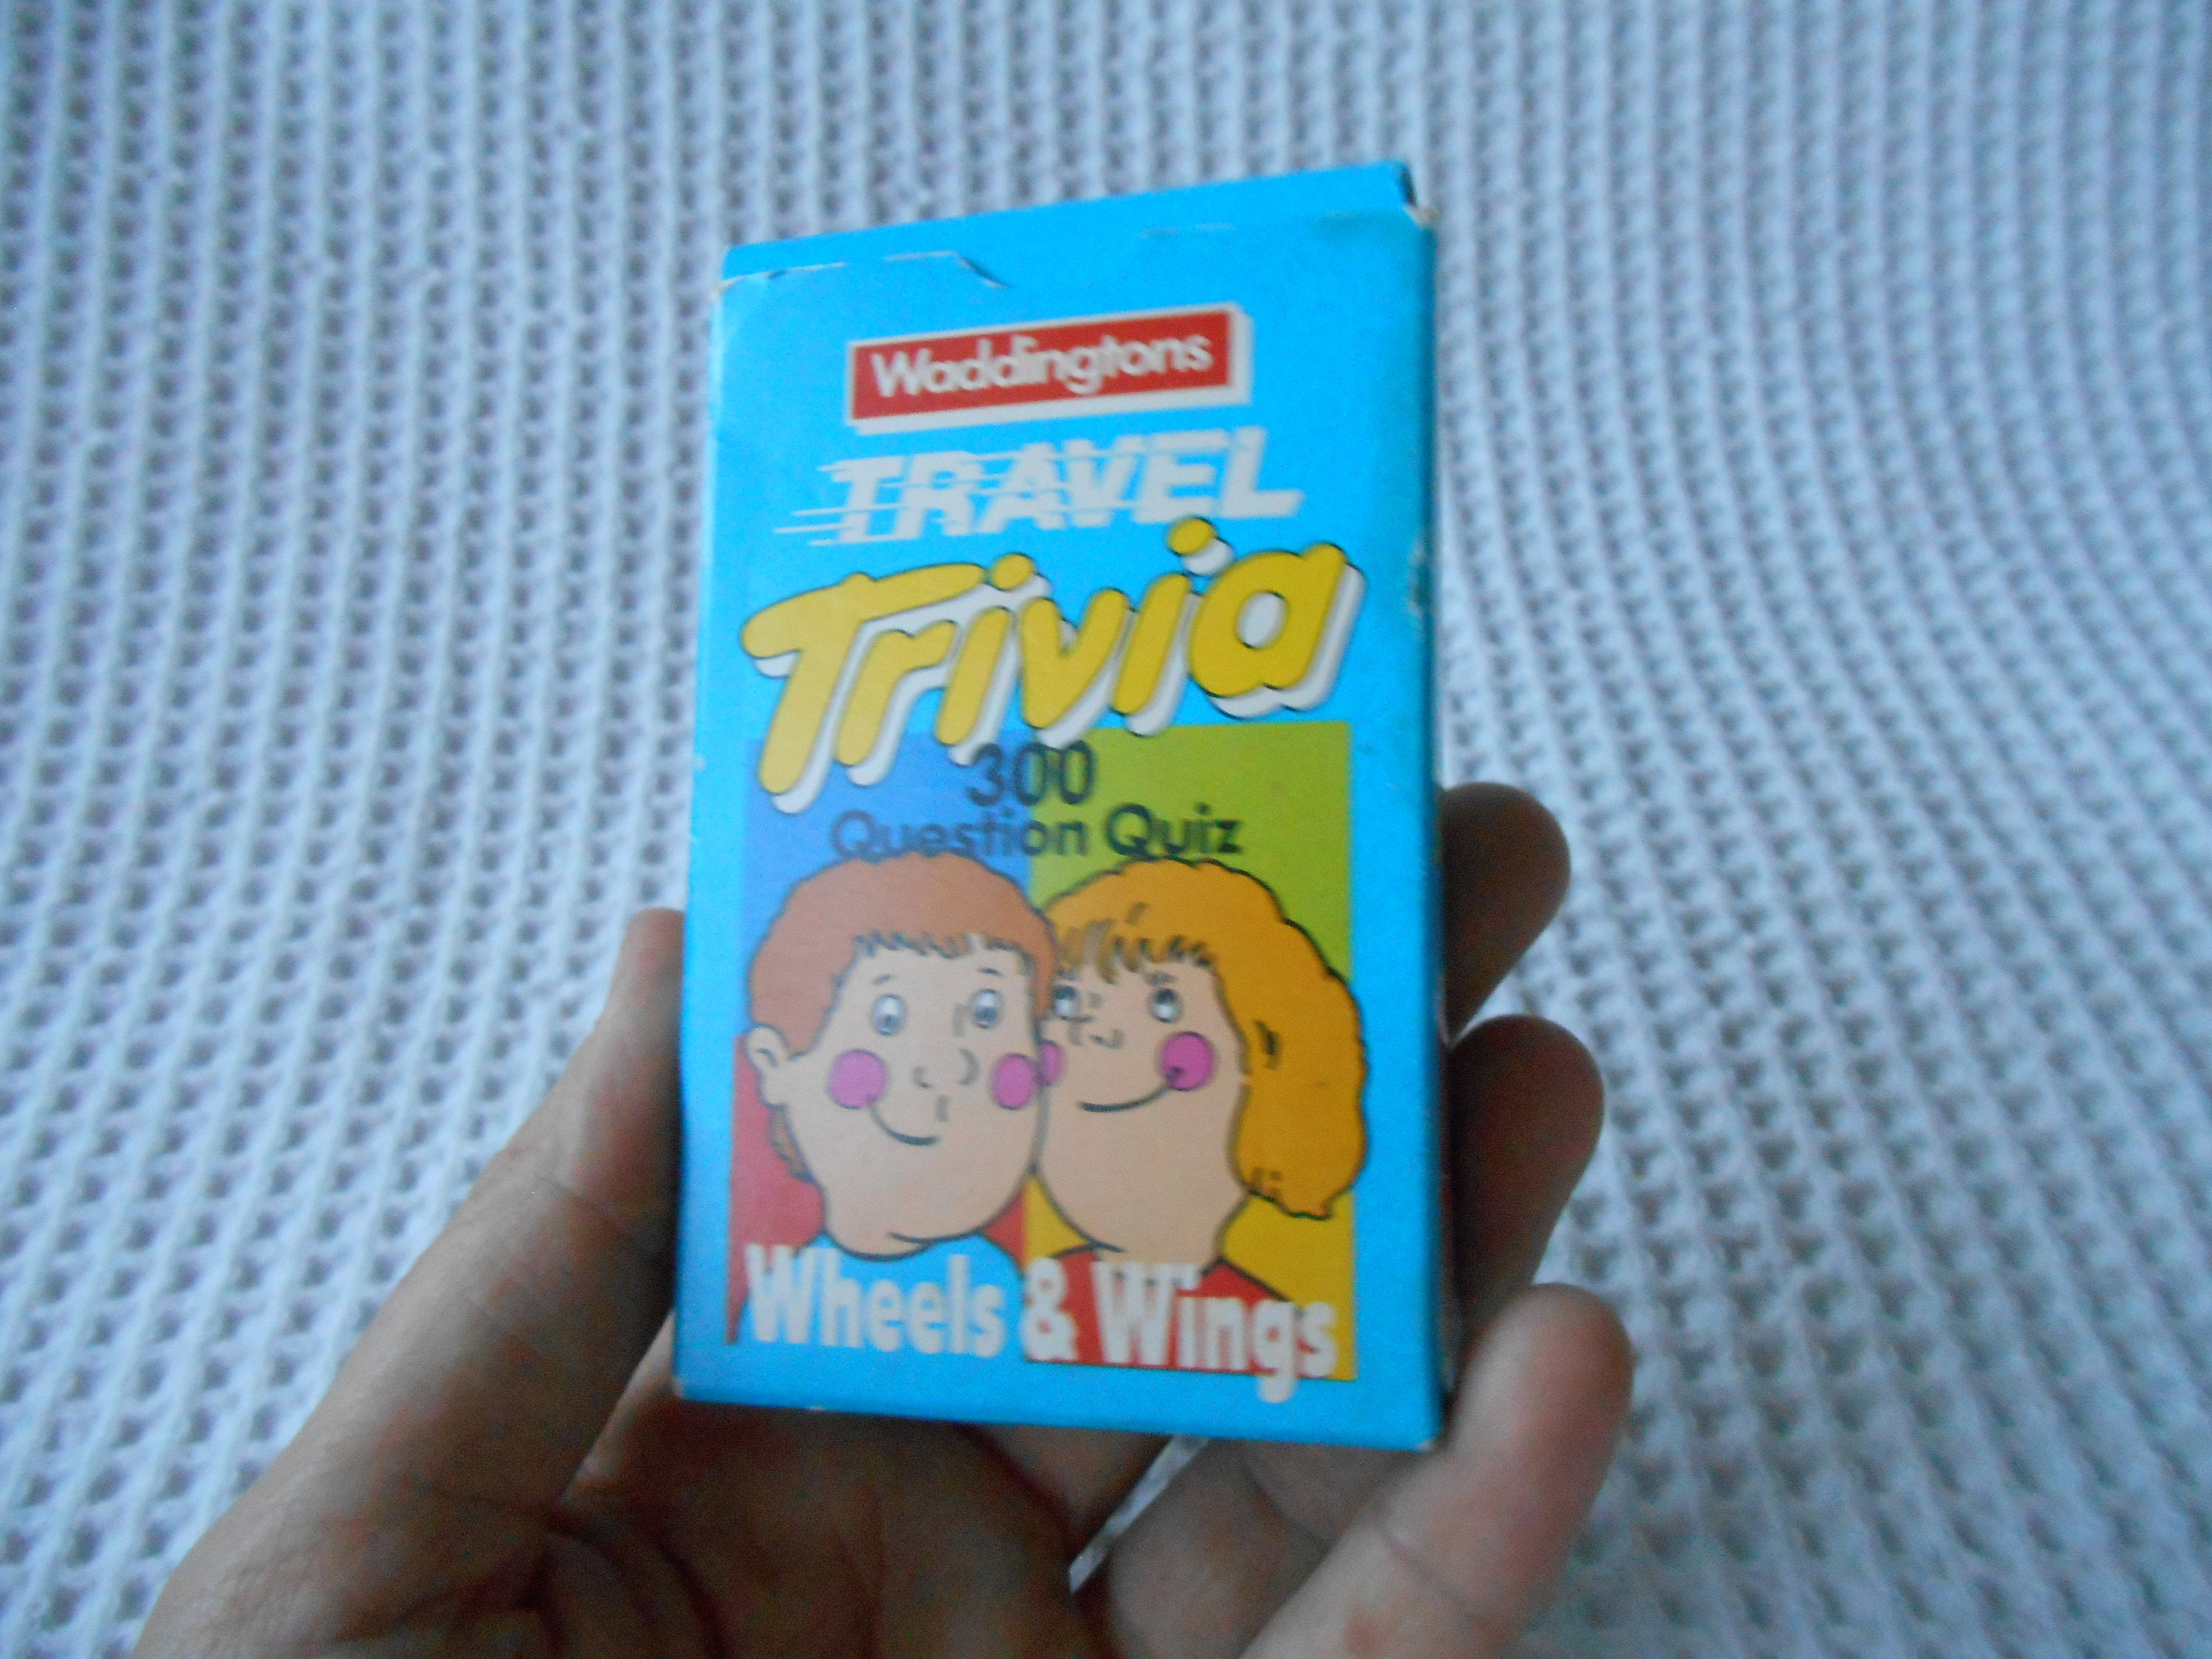 Vintage Waddingtons Travel Trivia Wheels and Wings Card Game